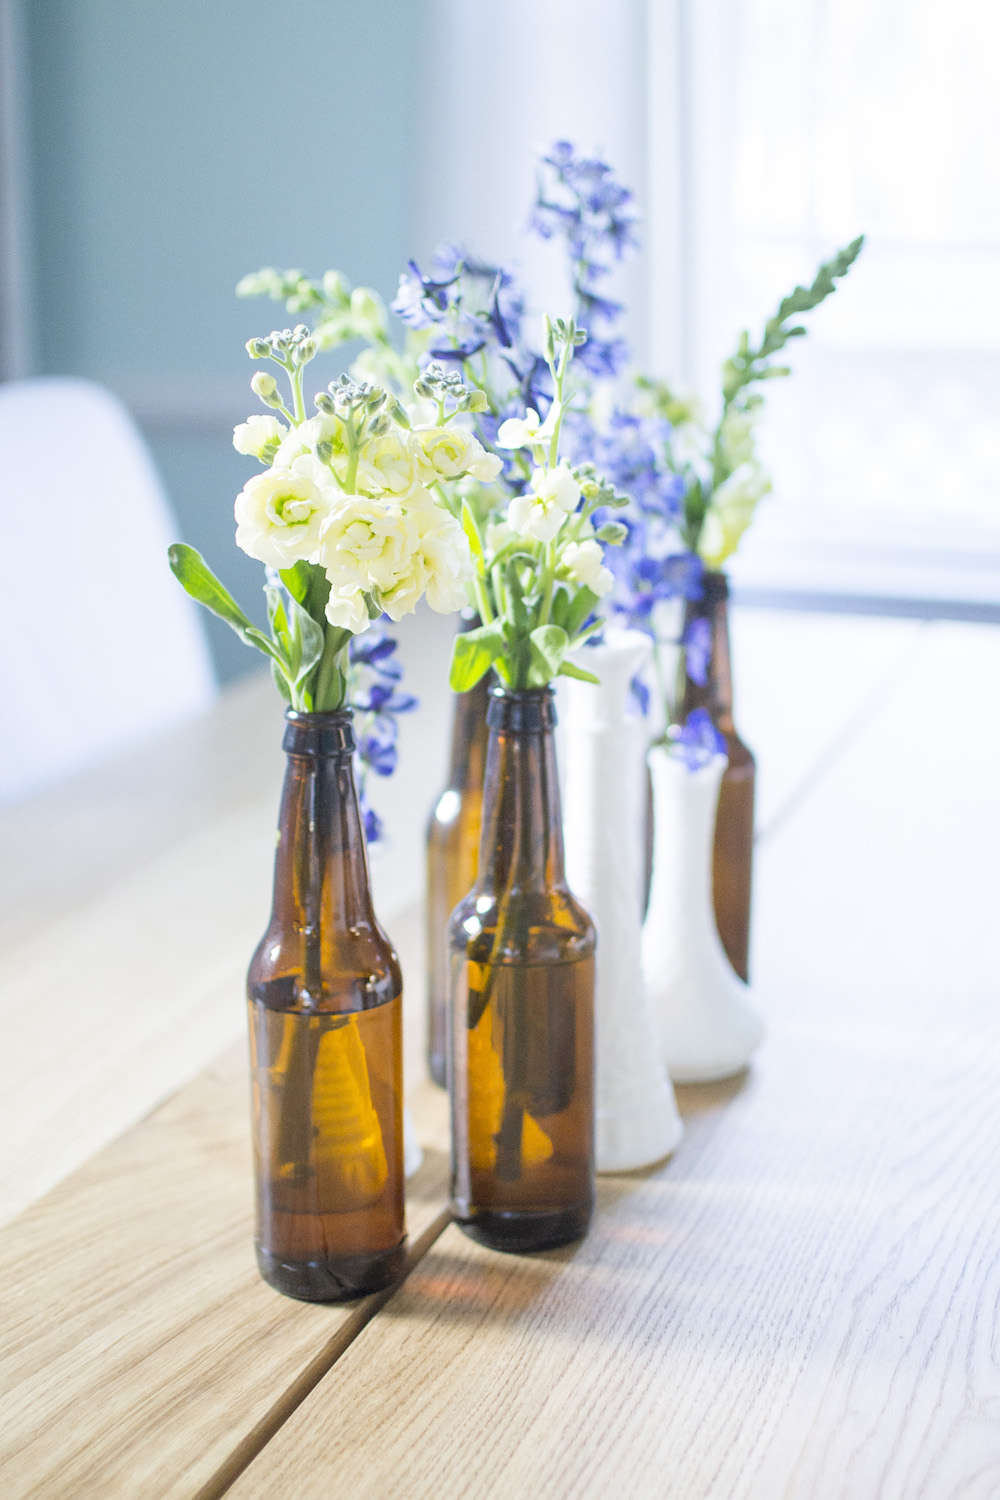 beer bottle vases.jpg